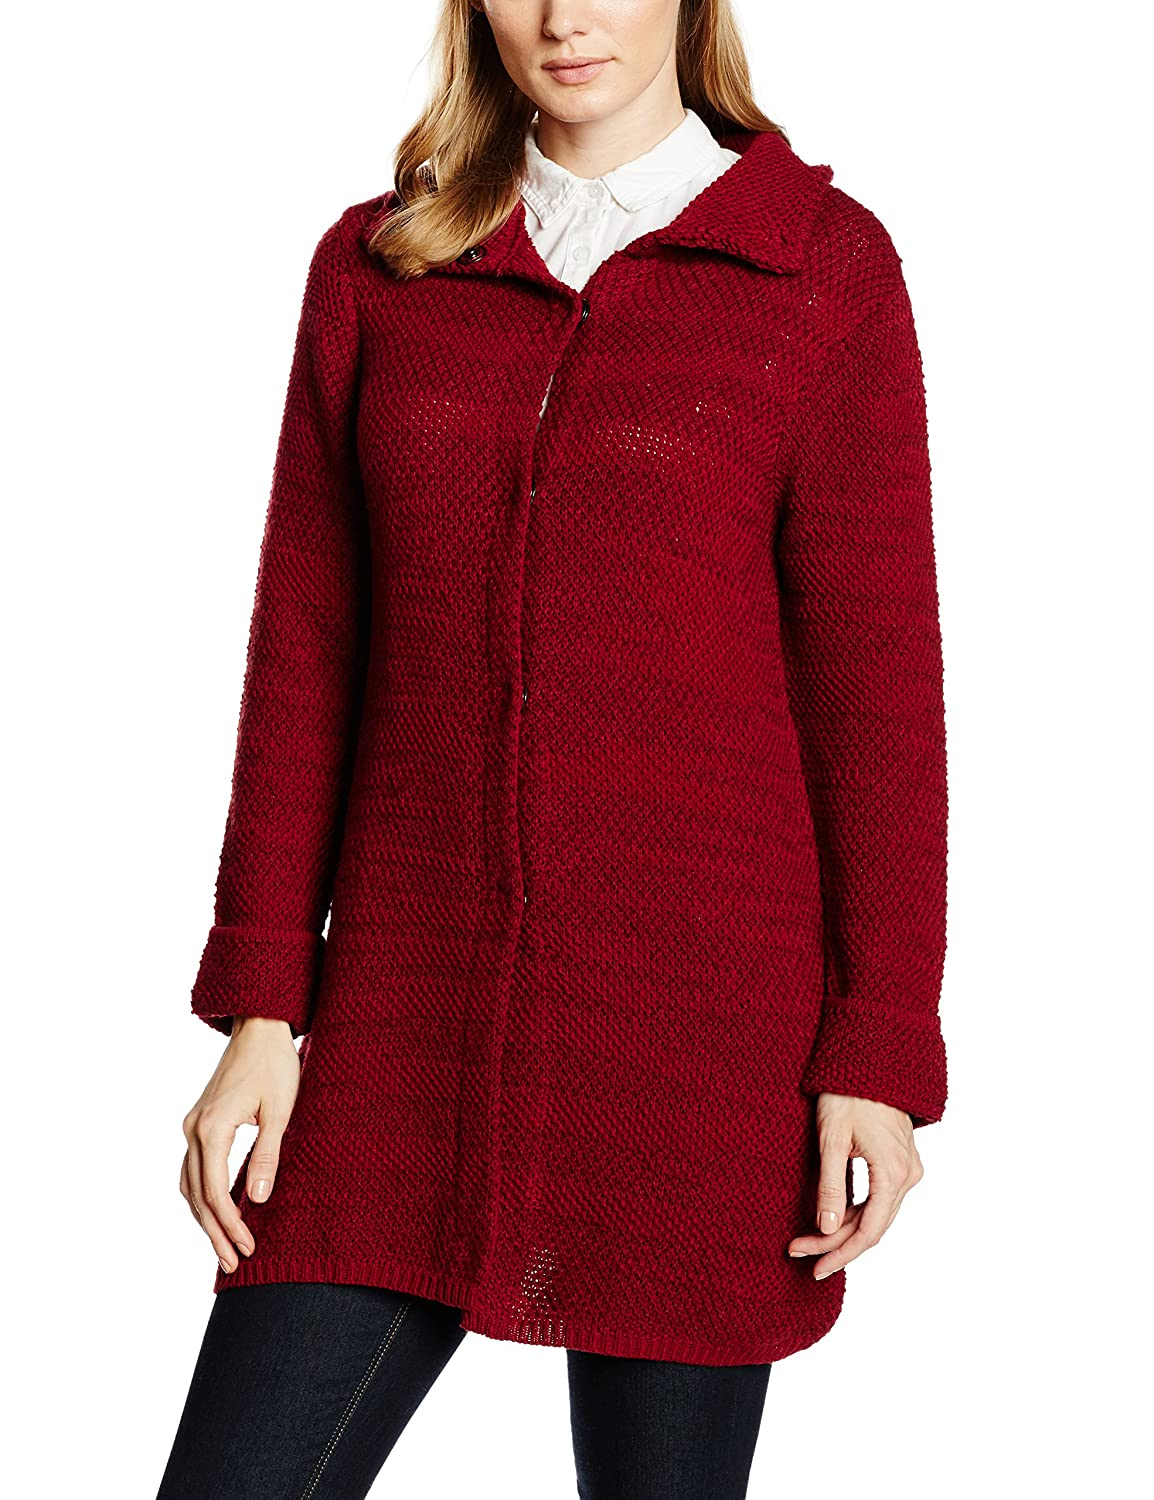 Olsen Damen Strickjacke Cardigan Long Sleeves